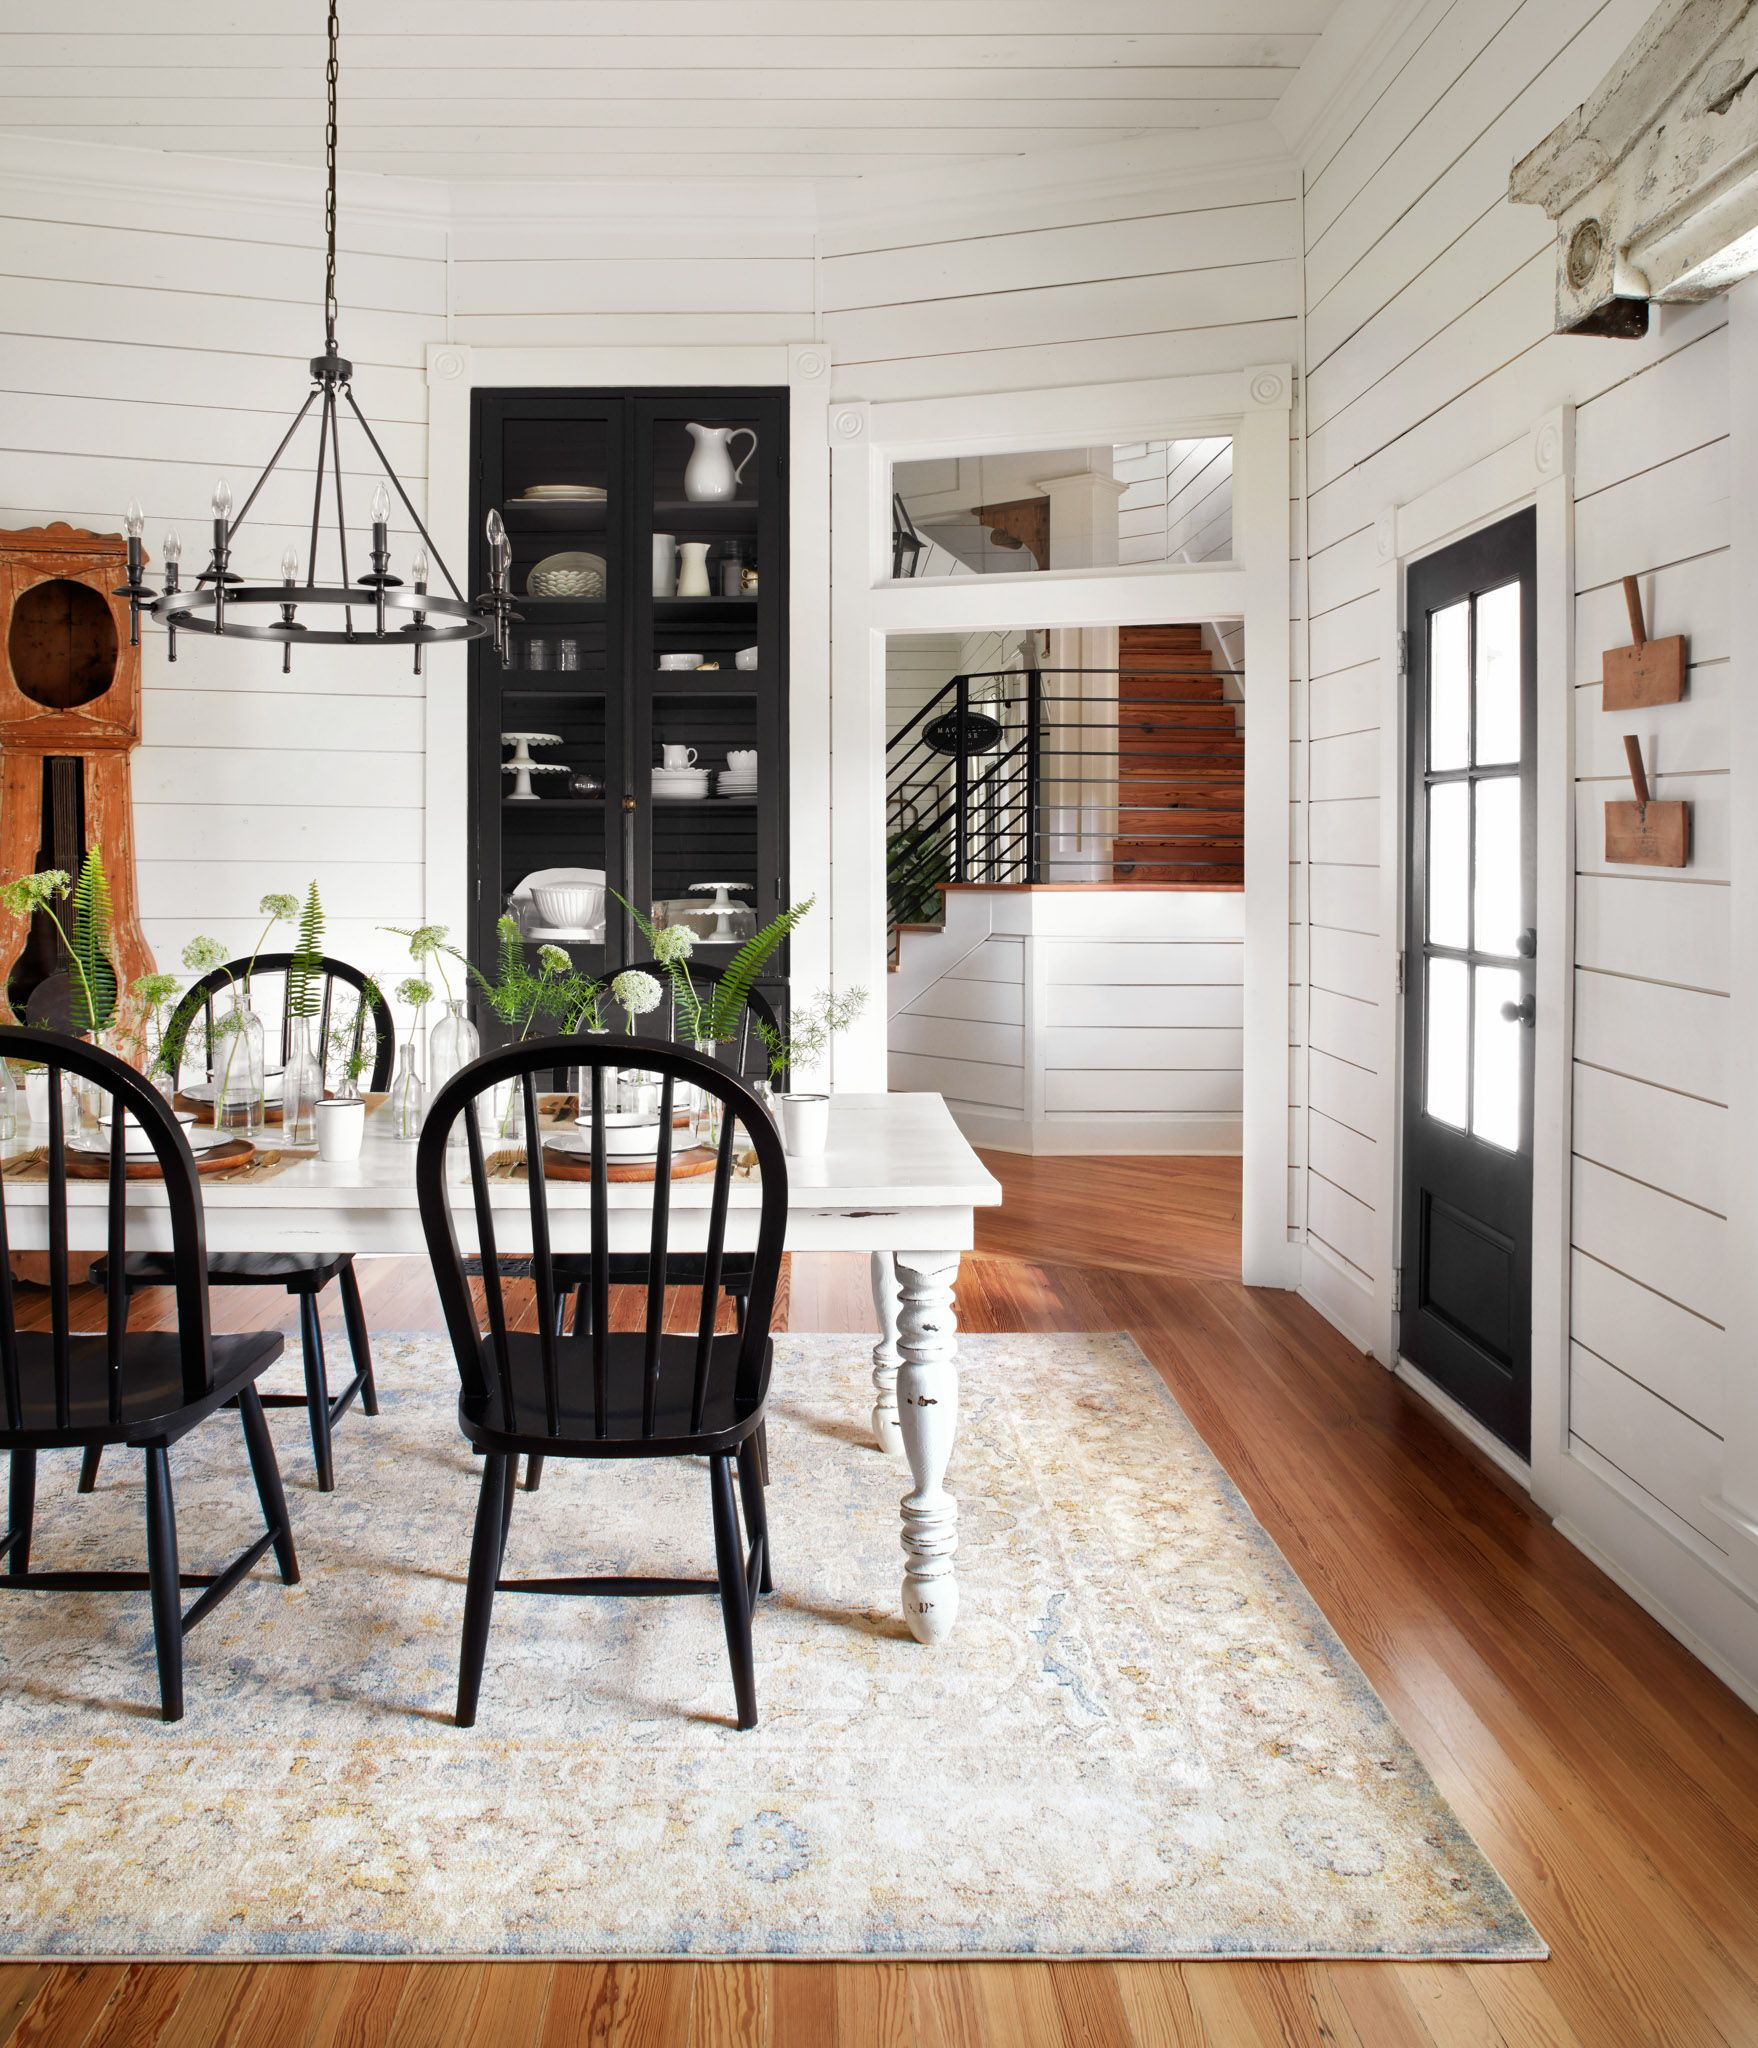 Joanna Gaines Farmhouse Dining Room Magnolia Home By Joanna Gaines Trinity Ty 01 Blue Multi